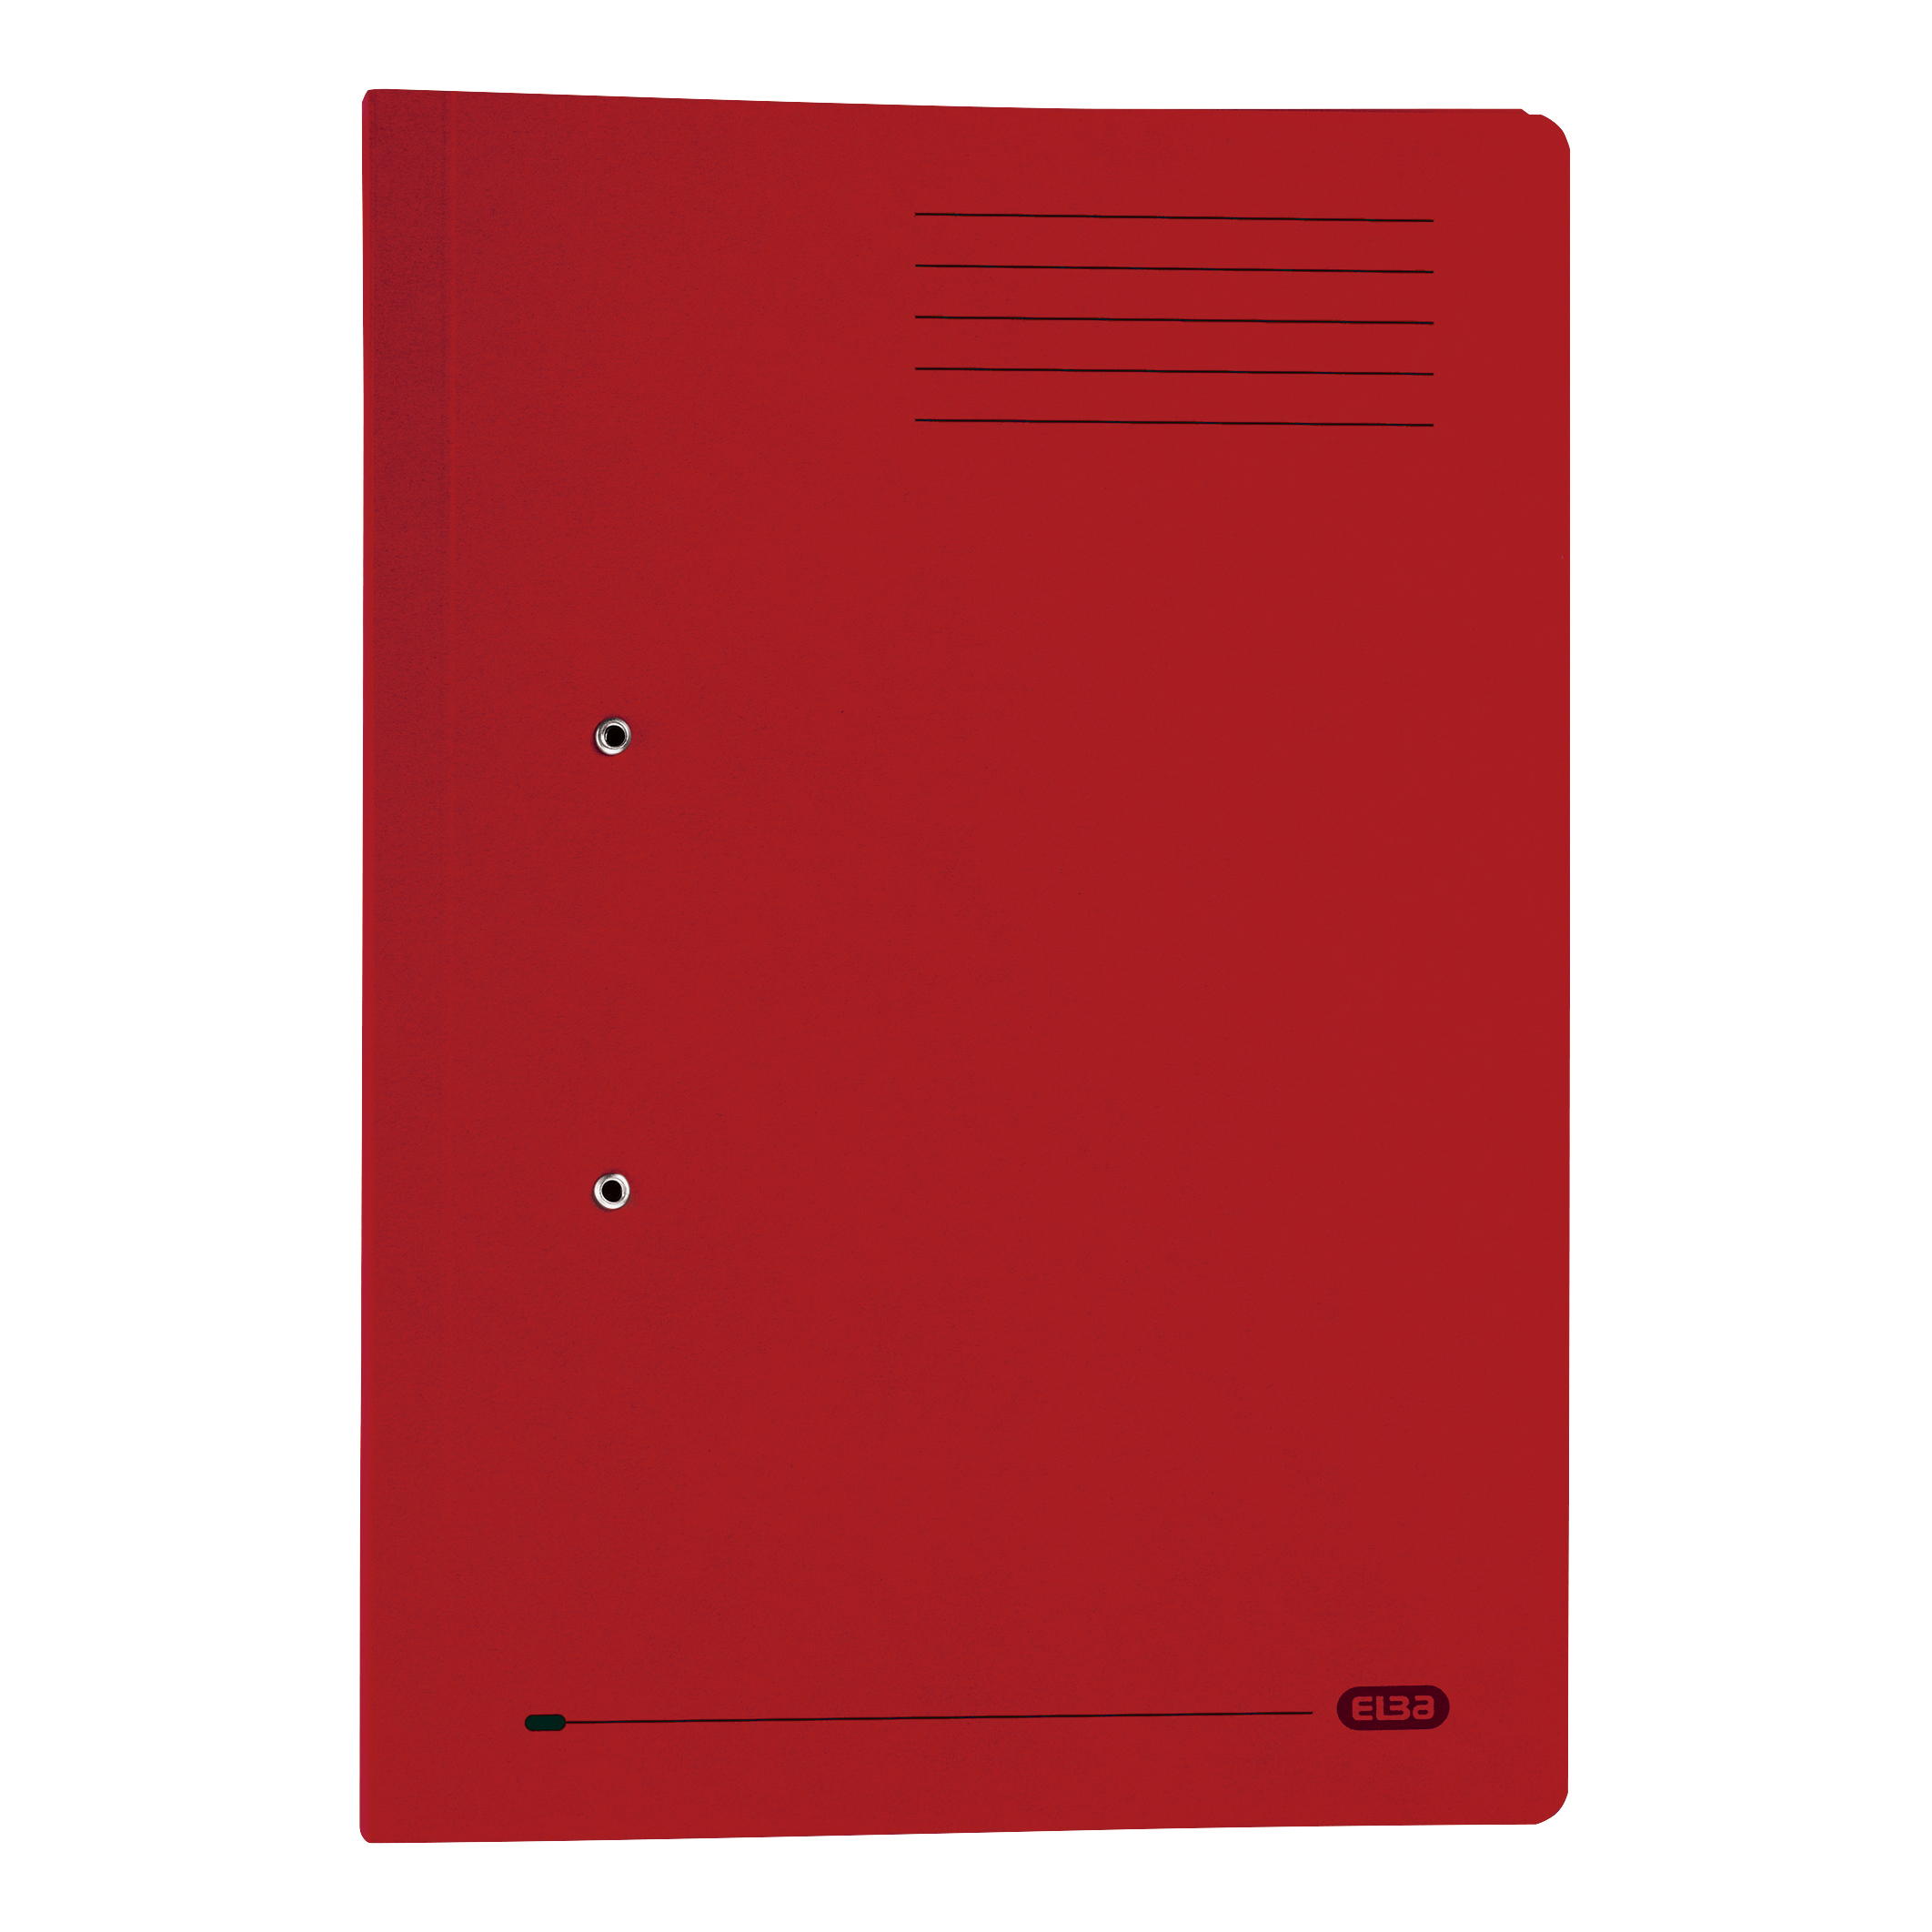 Elba StrongLine Transfer Spring File Recycled 320gsm Foolscap Bordeaux Ref100090149Pack 25 REDEMPTION